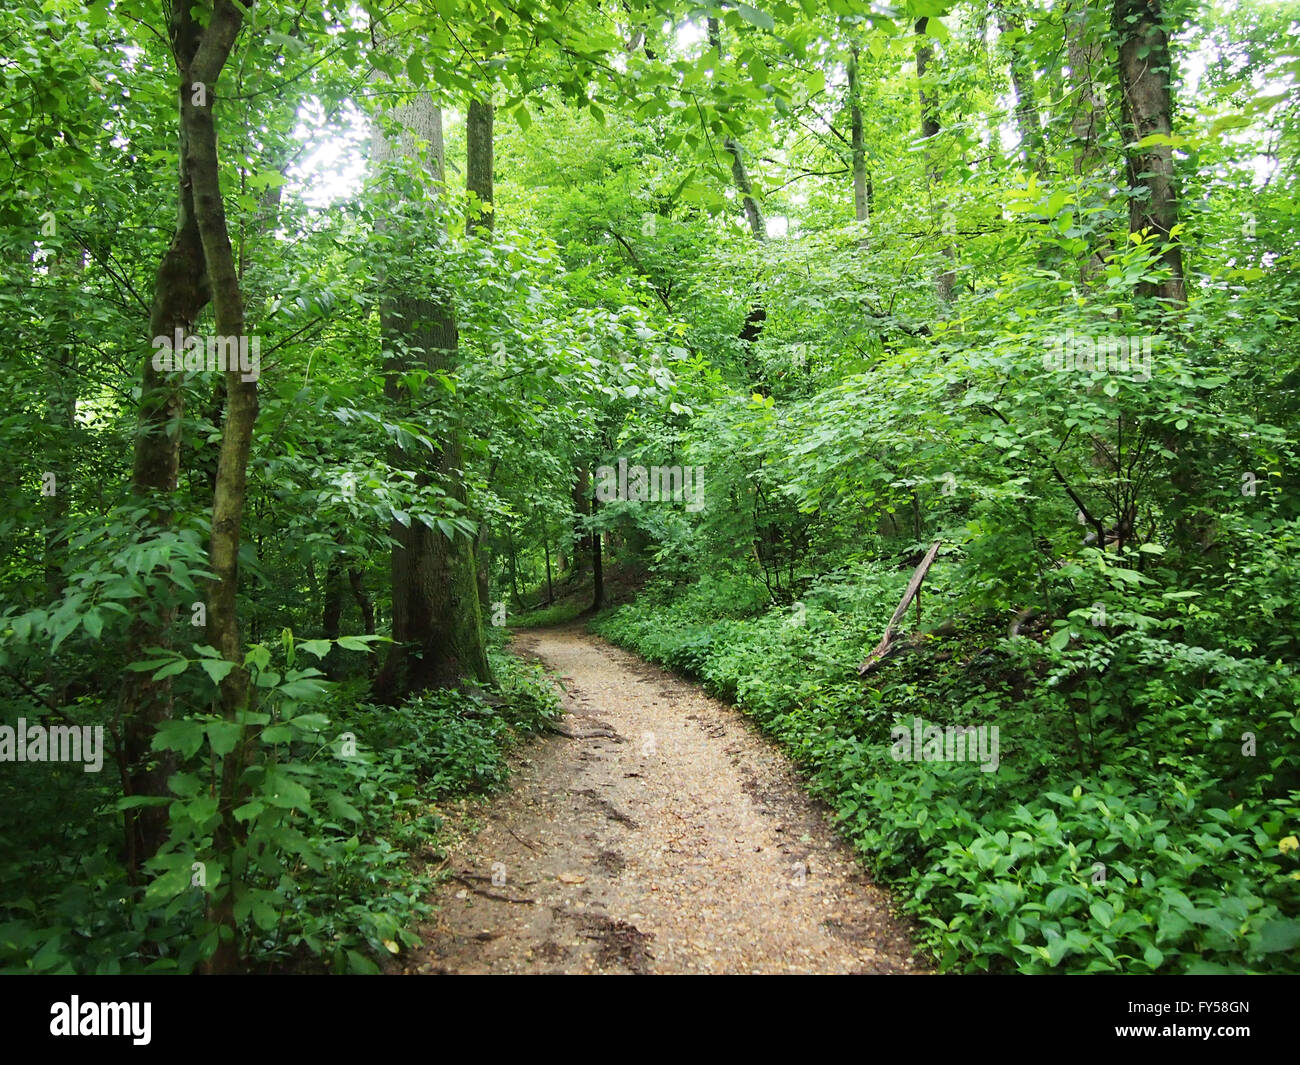 Dirt Path surrounded by trees in Forest in Rock Creek Park, Washington DC. Stock Photo